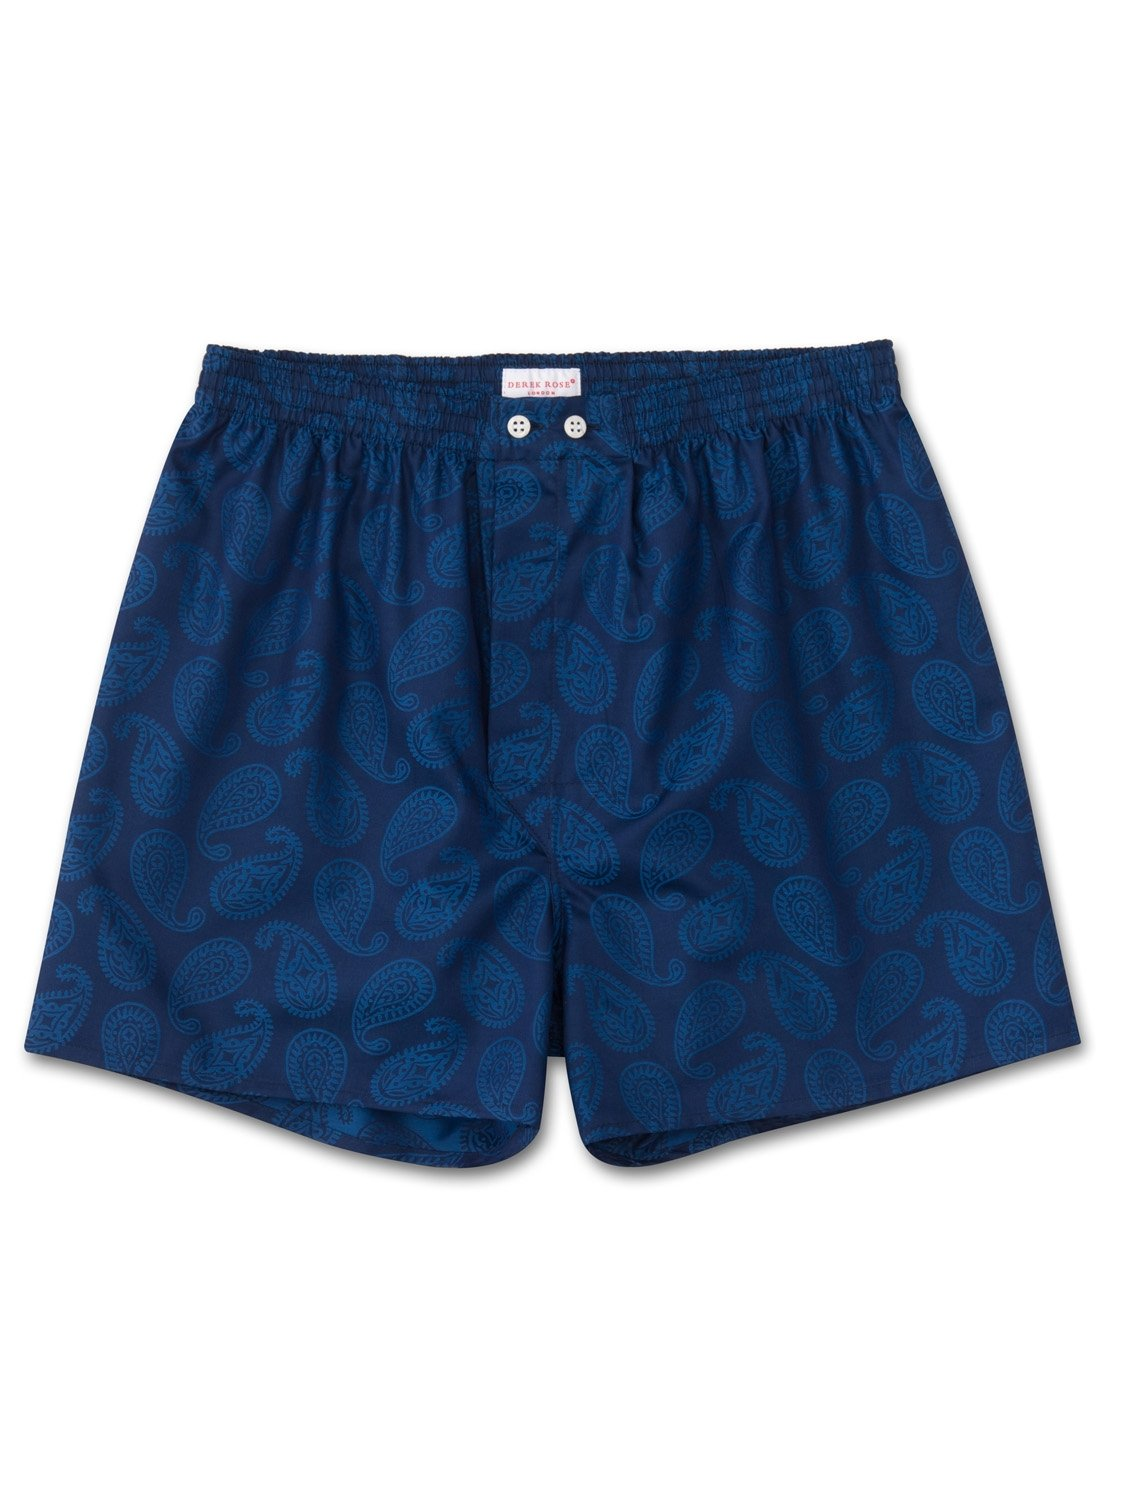 Men's Classic Fit Boxer Shorts Paris 13 Cotton Jacquard Navy